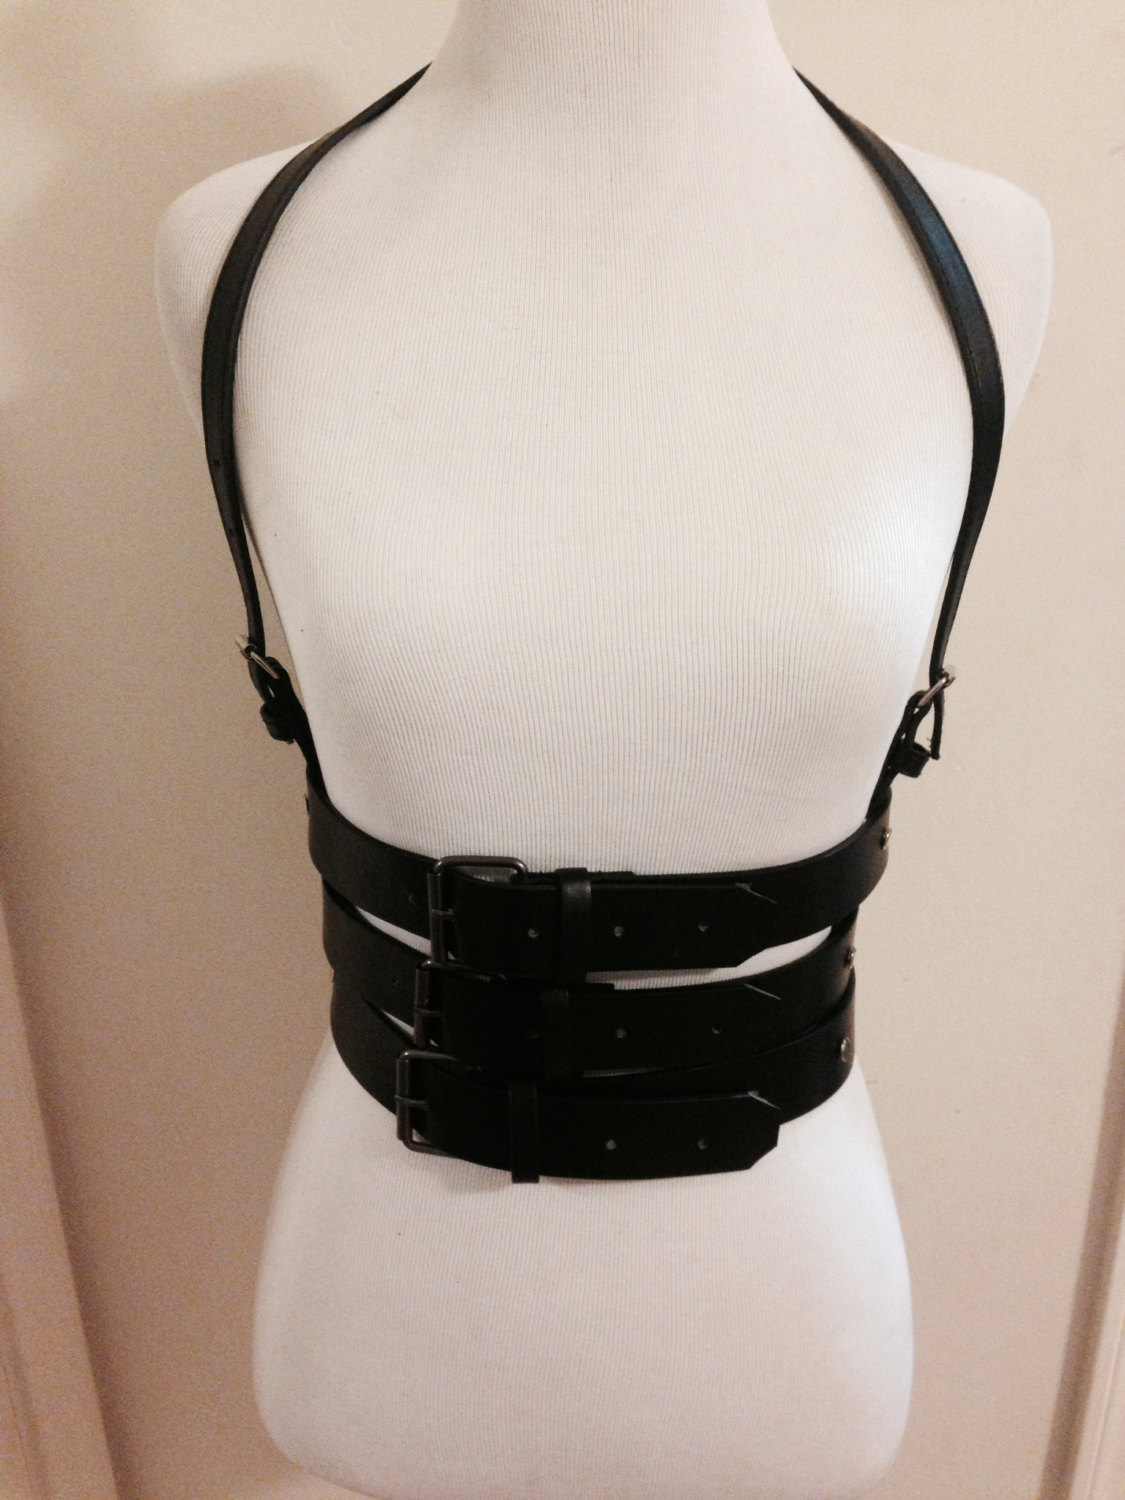 Leather harness underbust 3 row